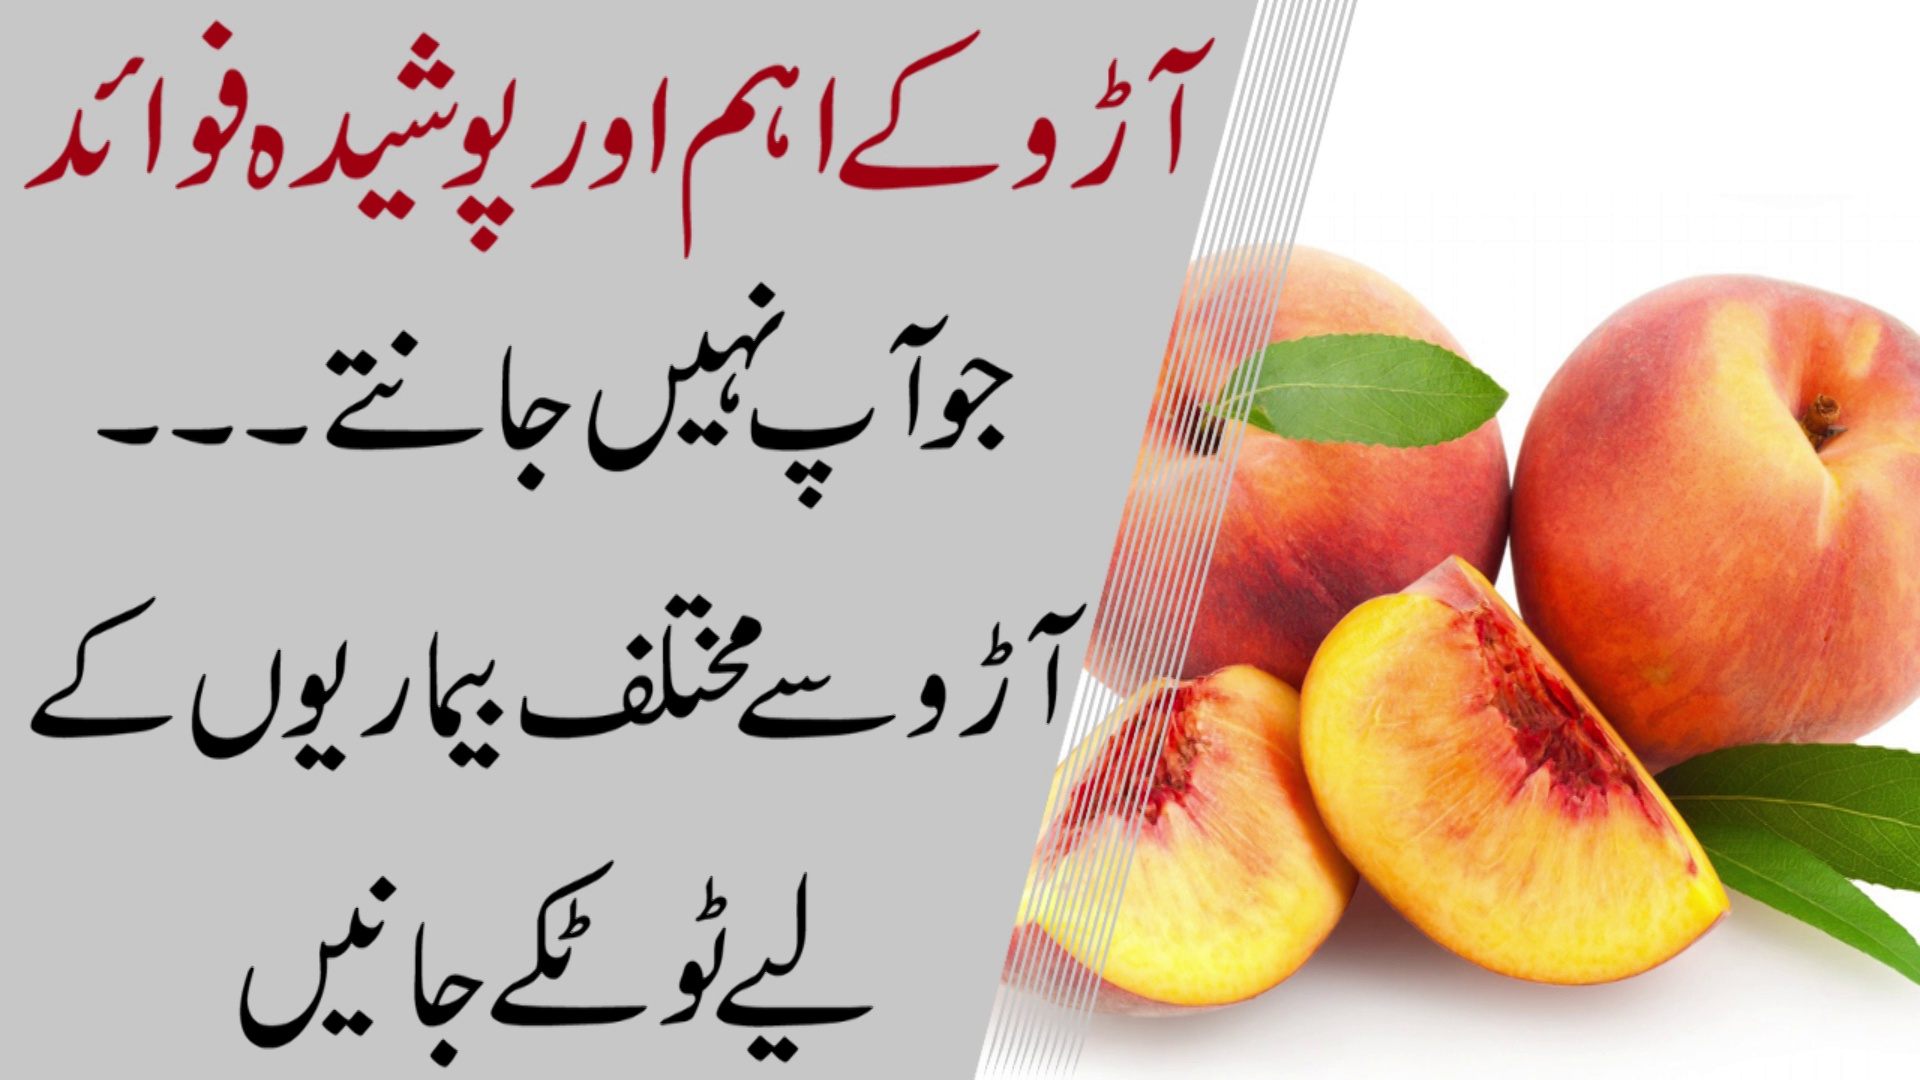 aaro ke fayde in urdu || peach benefits || peach ke faide || آڑو کے زبردست فائدے